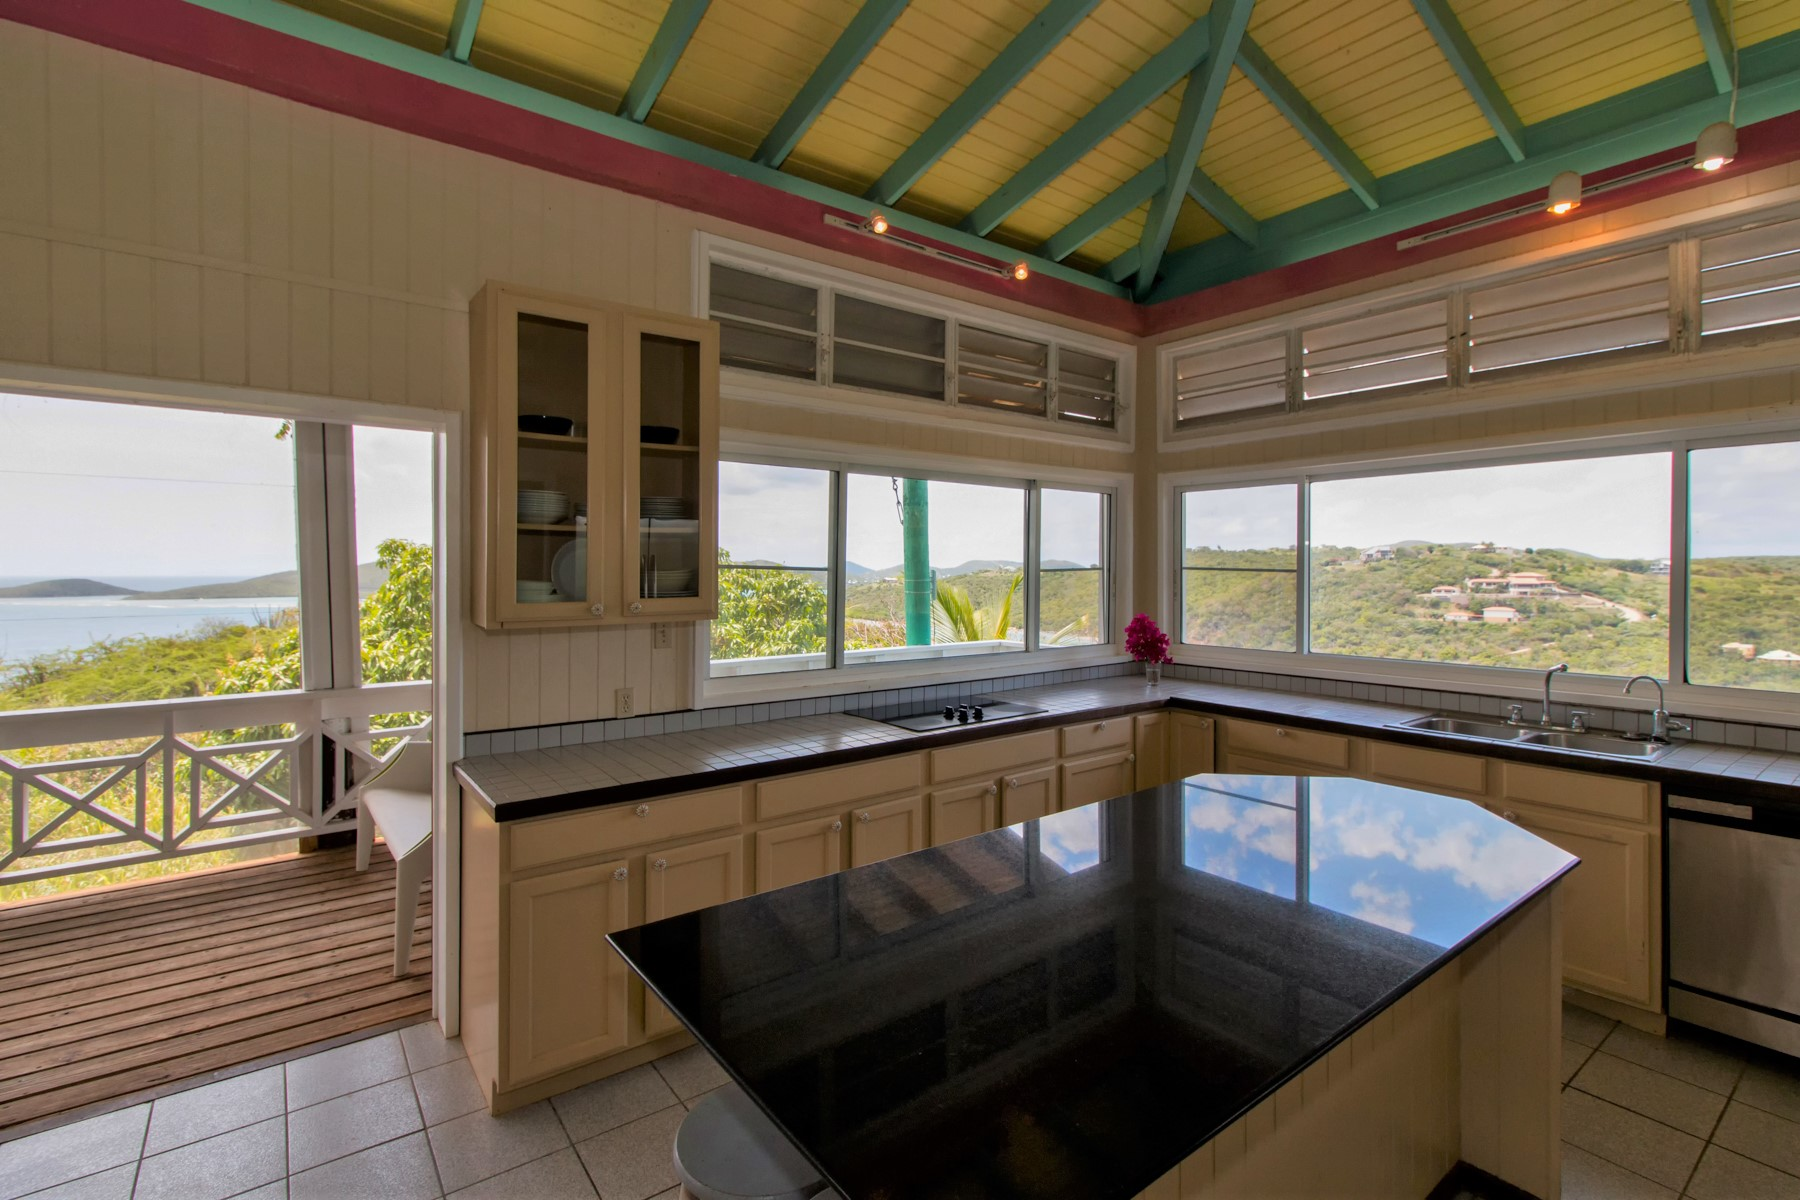 Additional photo for property listing at Inspiring Oceanview Privacy on Culebra Island 6 Punta Del Viento Estates Culebra, Puerto Rico 00775 プエルトリコ